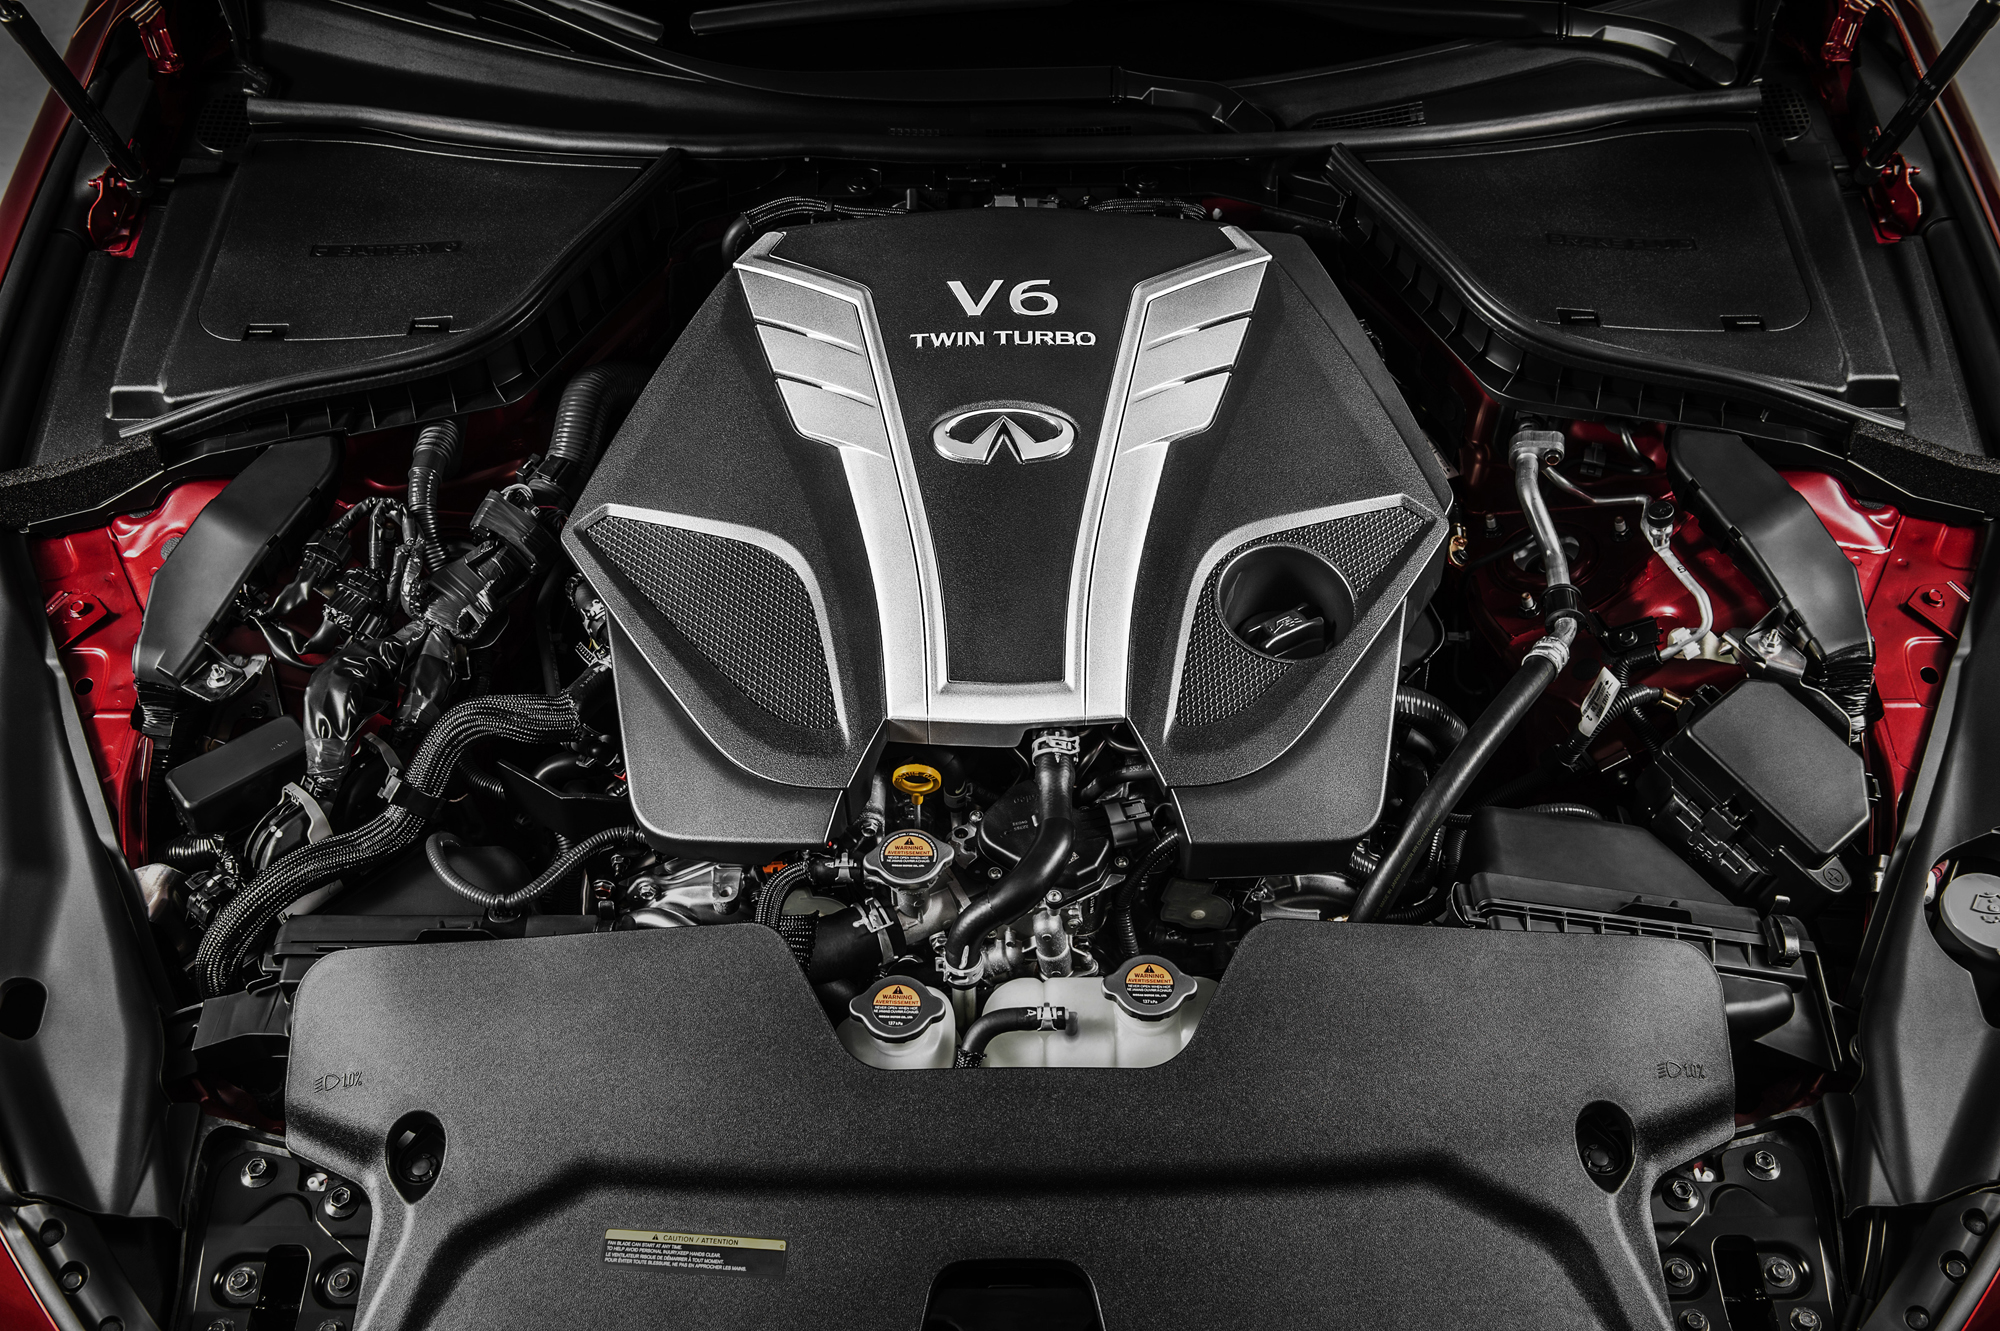 Infiniti 3.0-liter V6 twin-turbo engine - under the hood